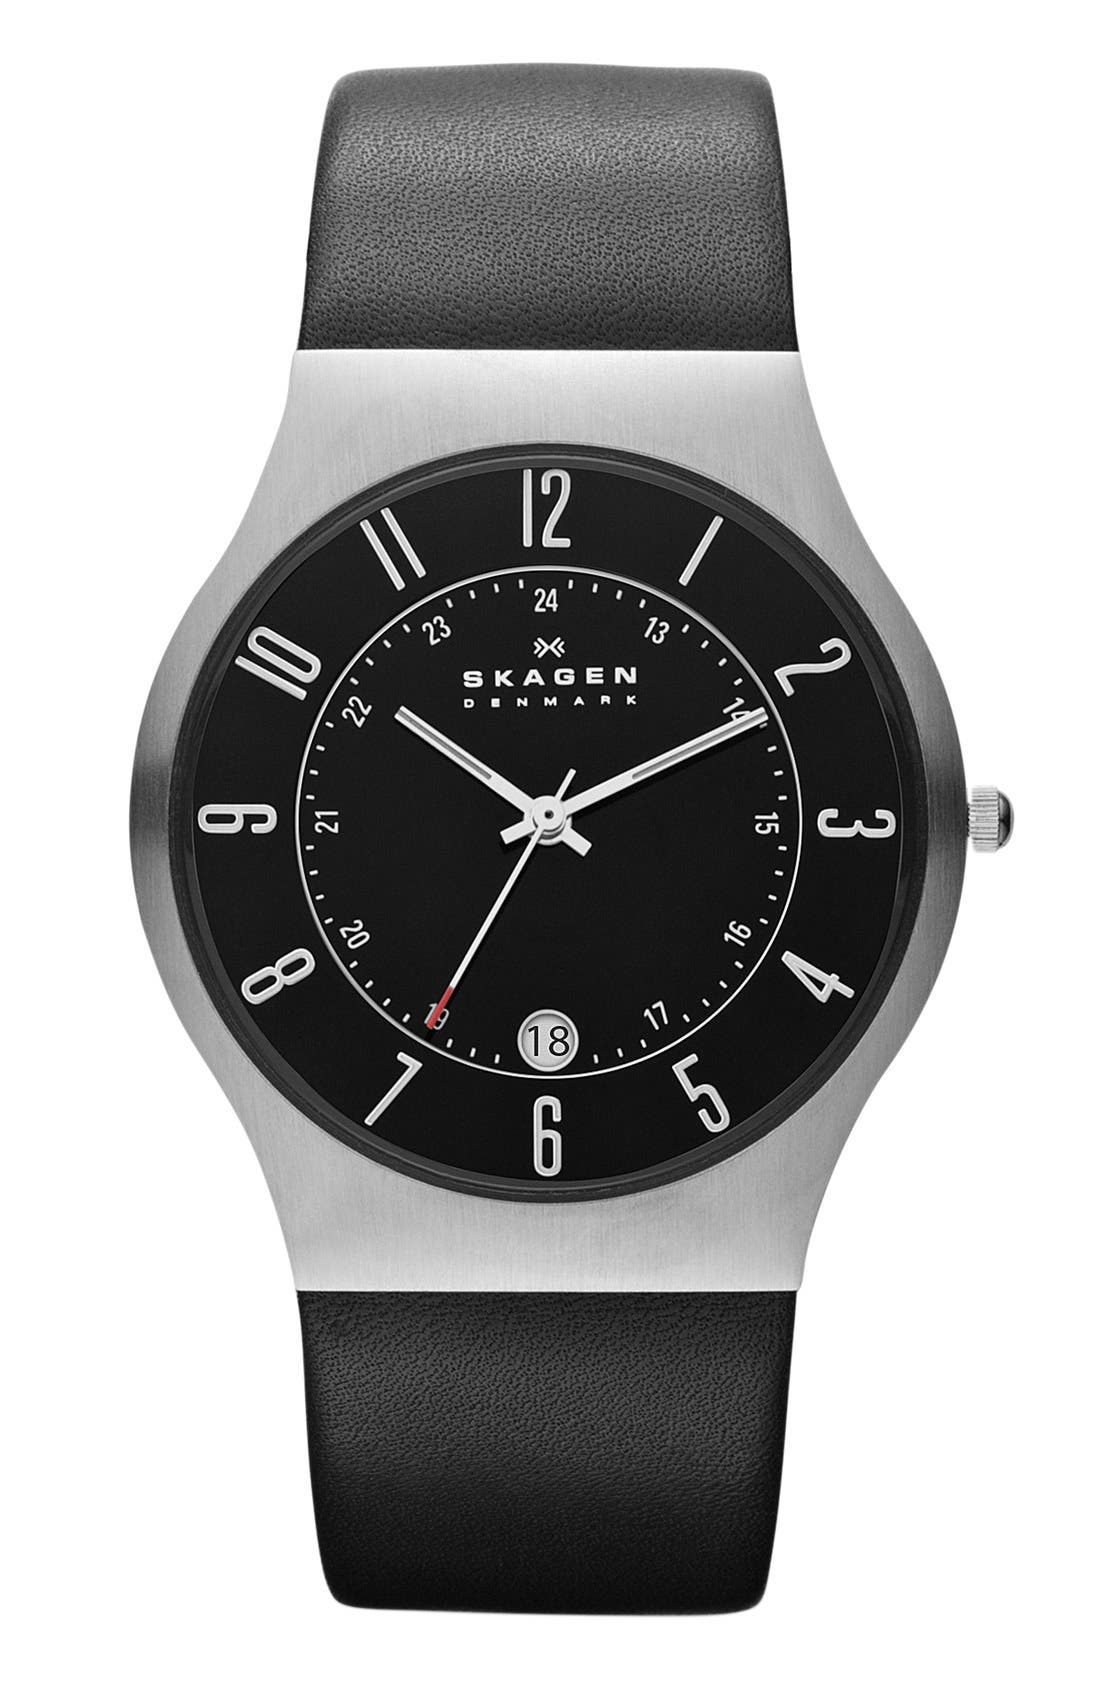 Main Image - Skagen 'Grenen' Titanium Case Watch